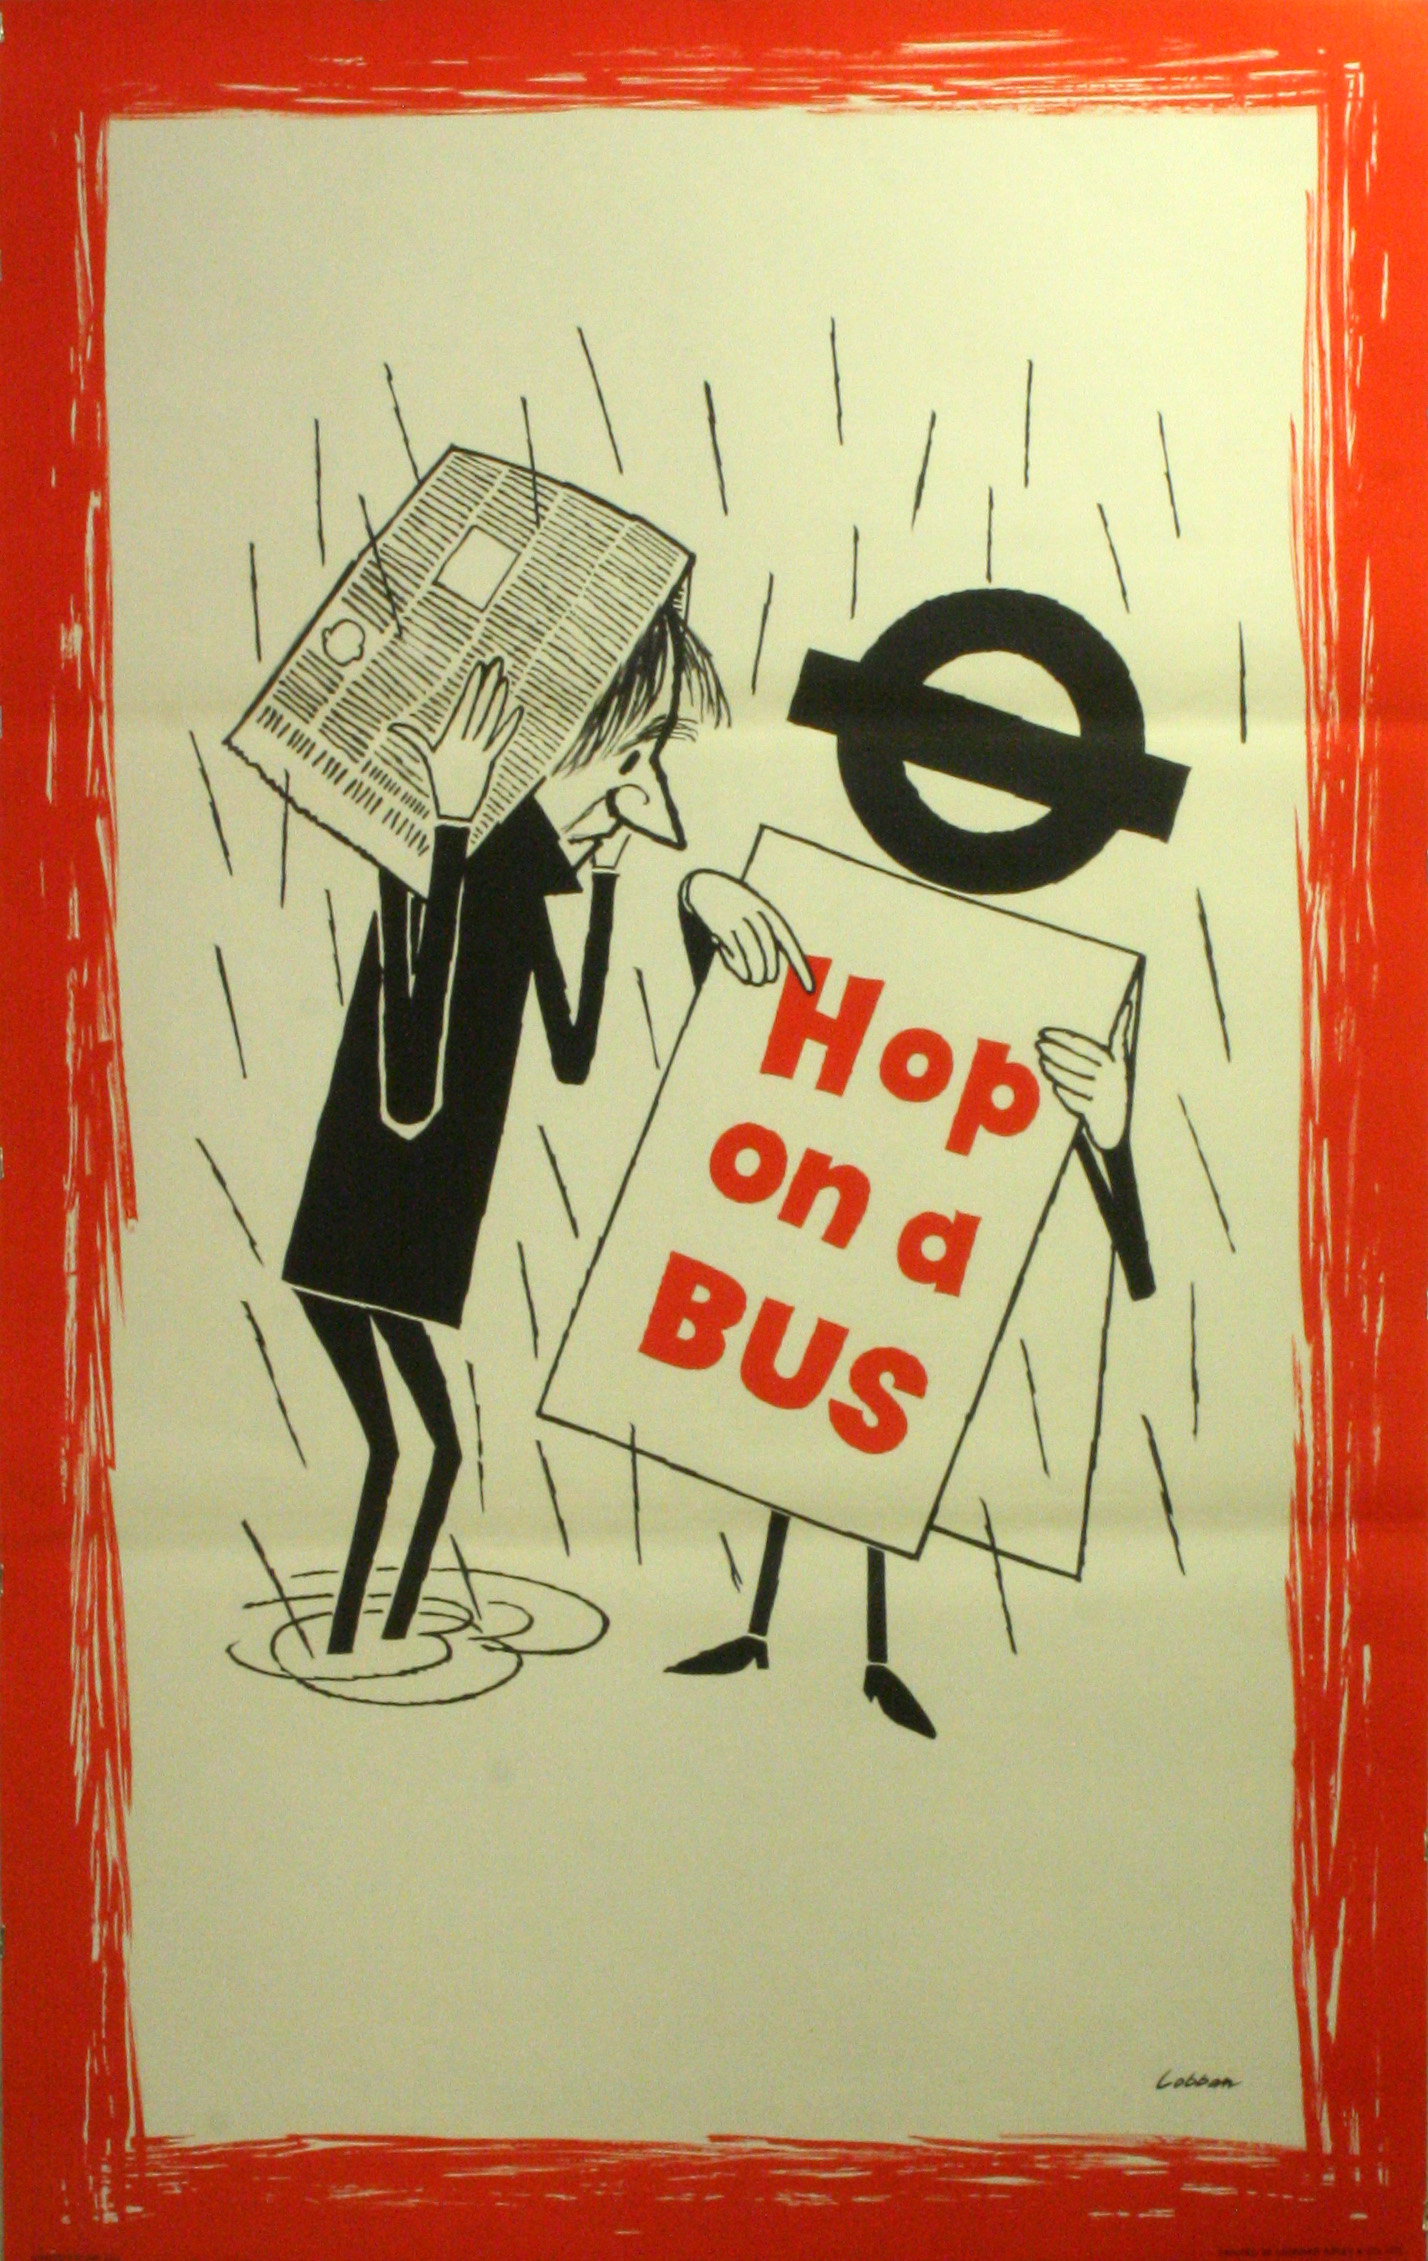 Lot 1505 - Original Vintage Poster LT London Transport: Hop on a Bus - rain